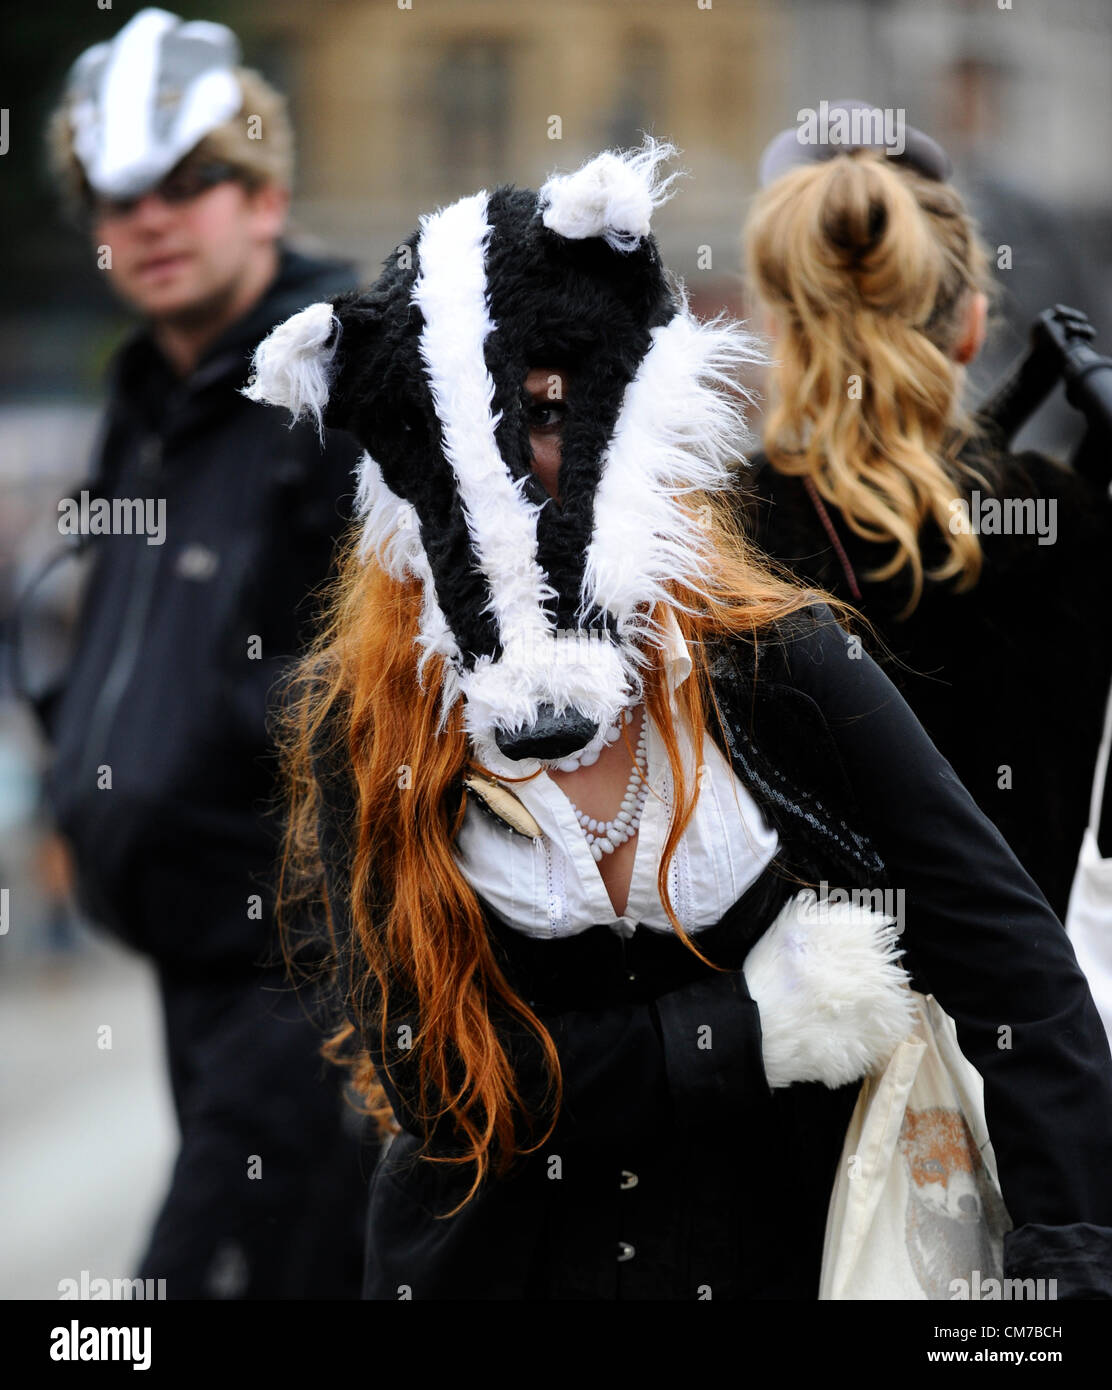 Trafalgar Square, London, UK. 21st October, 2012. Protesters dressed as badgers dance in Trafalgar Square to protest Stock Photo